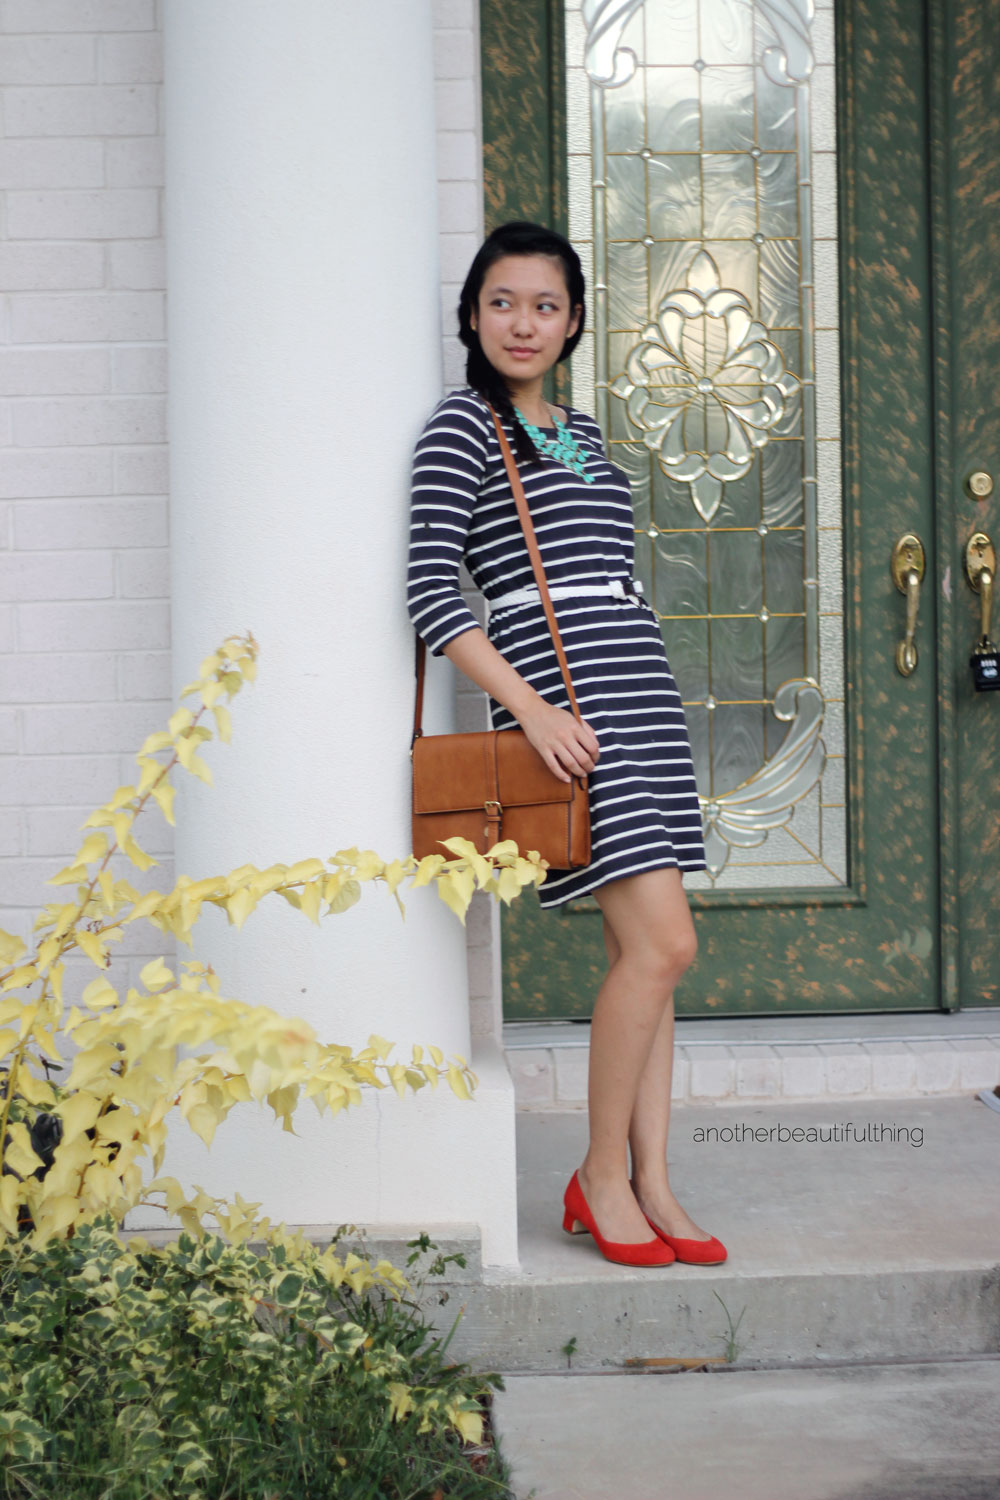 T-shirt dress with brown satchel and flame red pumps